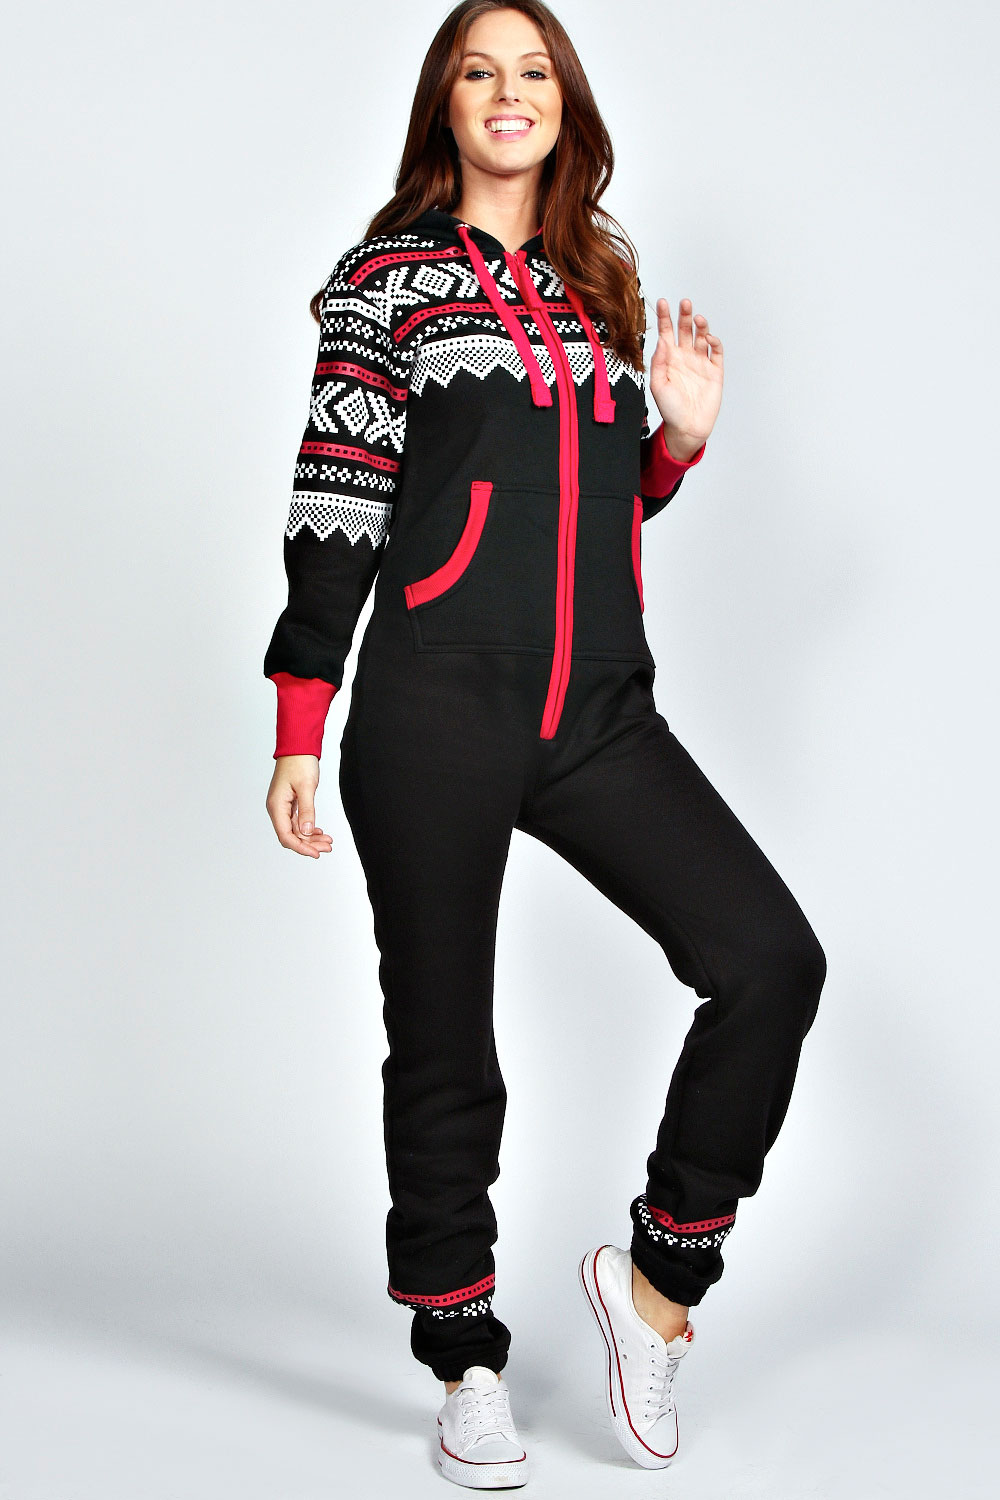 Ladies Onesies. invalid category id. Ladies Onesies. Showing 40 of results that match your query. Search Product Result. Womens Medium Fleece Lounge Pajama Bottoms Camo with Neon Pink Waist Band. Product - Buffalo Bills Team Logo Ladies Soft .